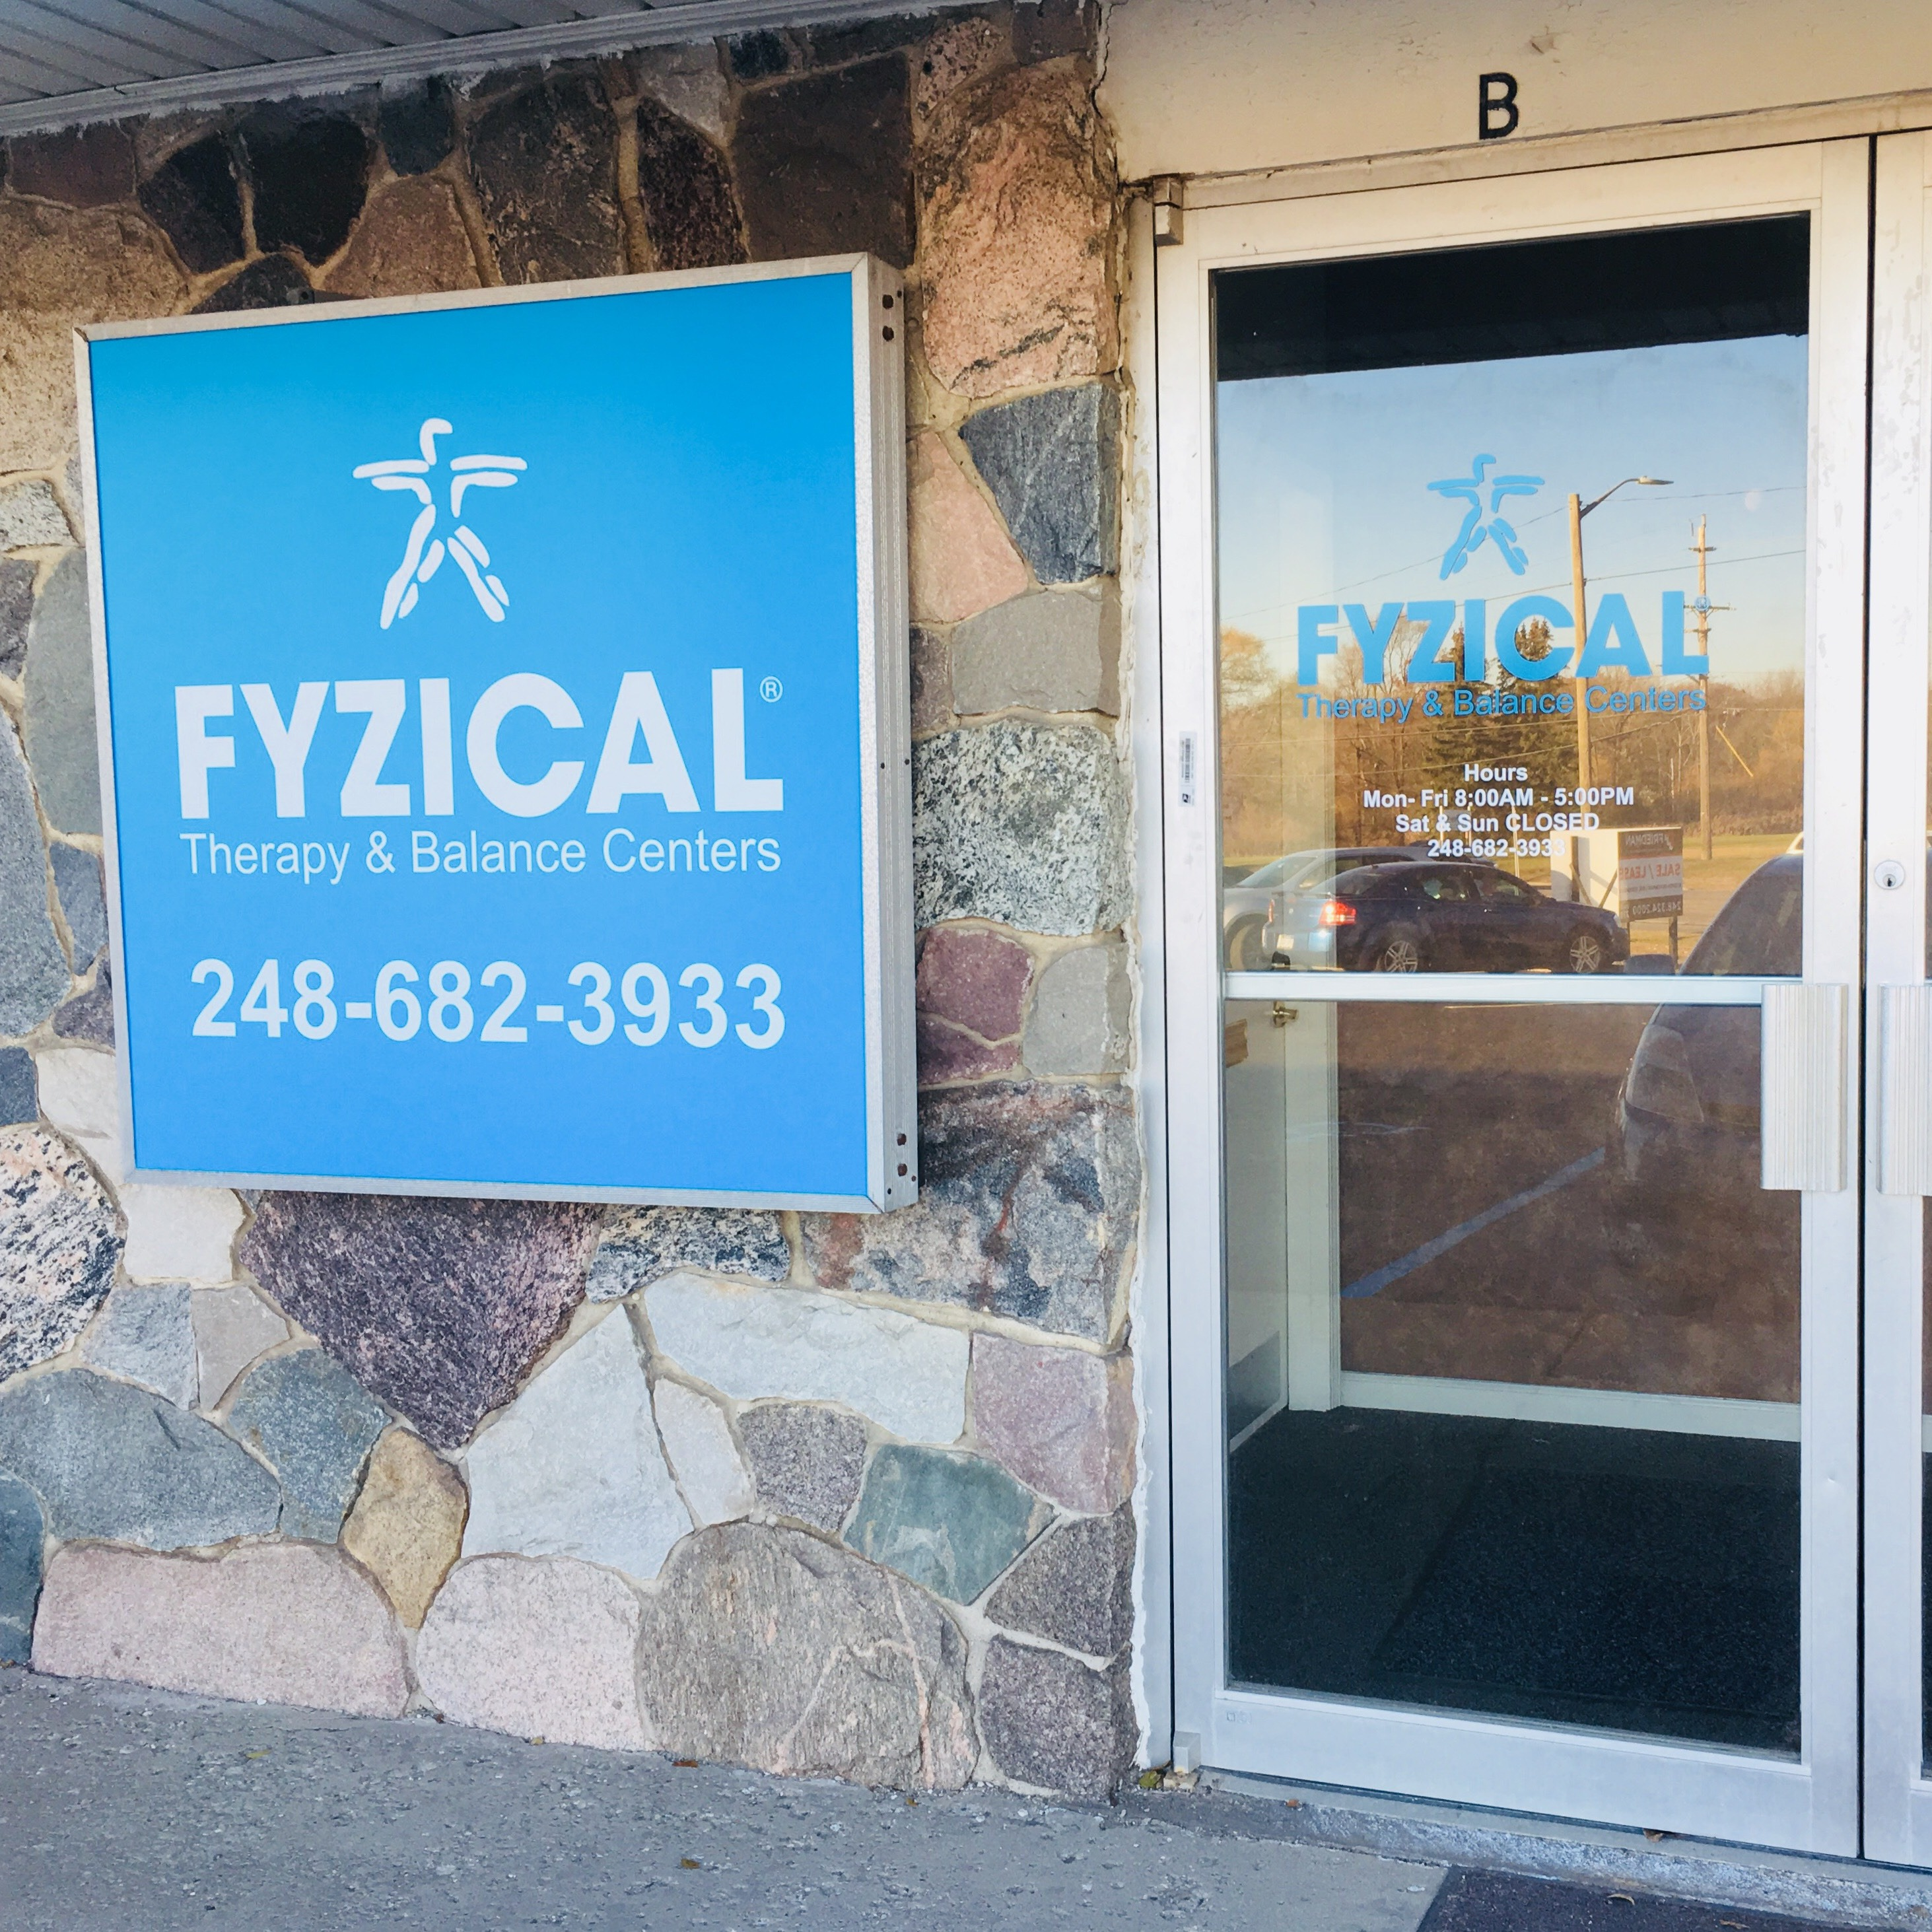 Fyzical Therapy and Balance center Image